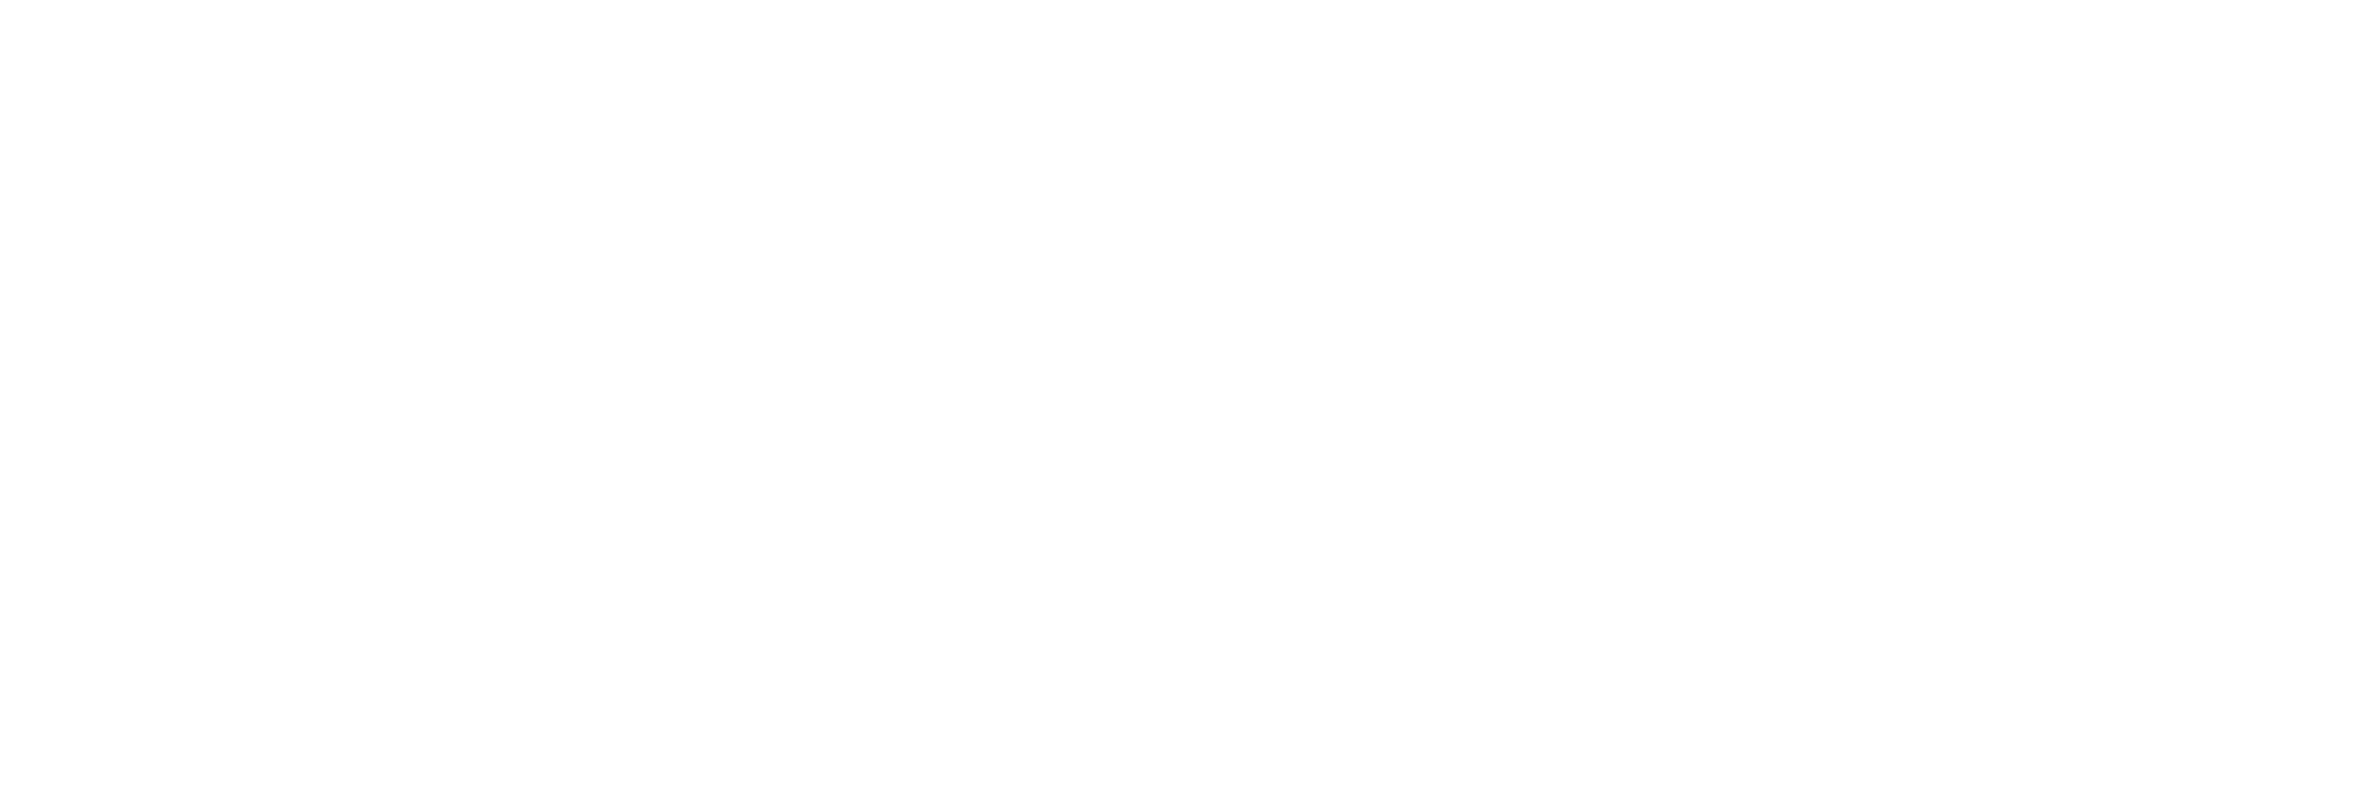 White Rose Libraries